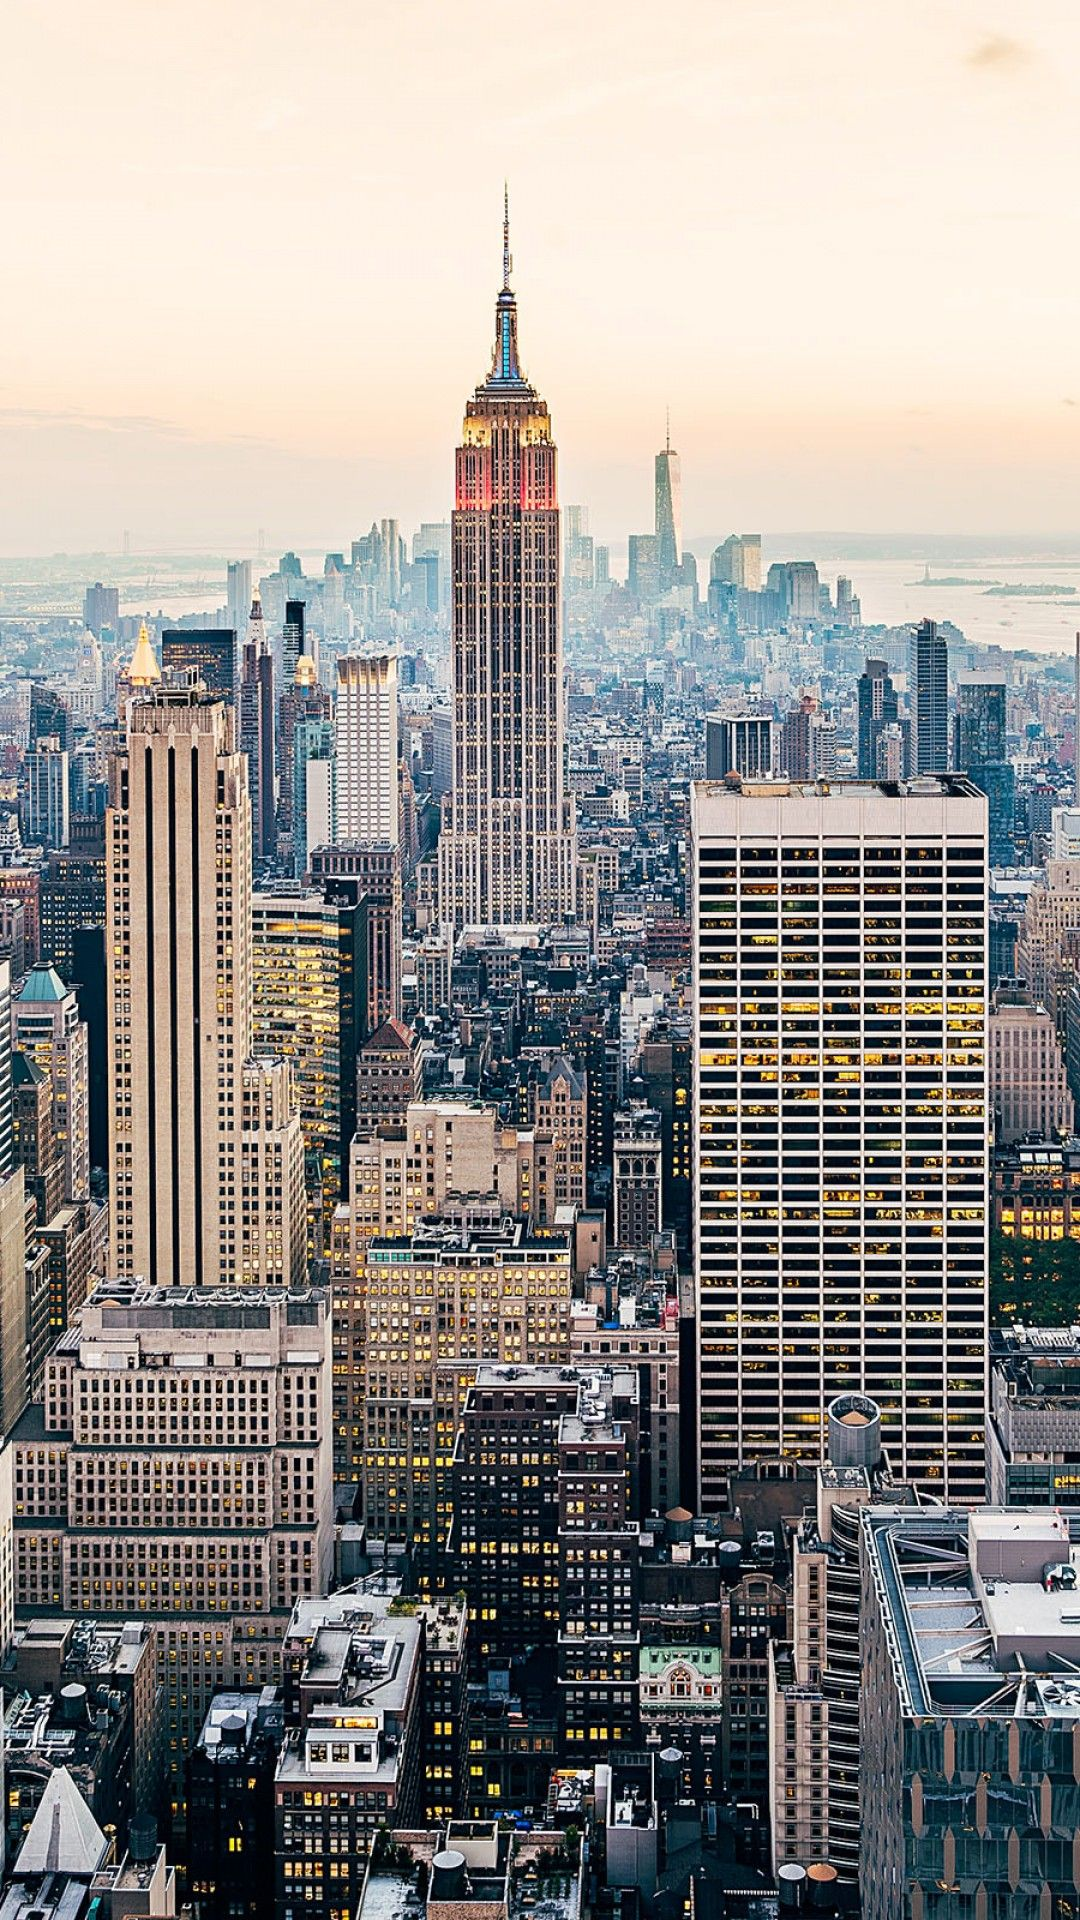 City Wallpaper Android City Wallpaper Cool Places To Visit Visit New York City